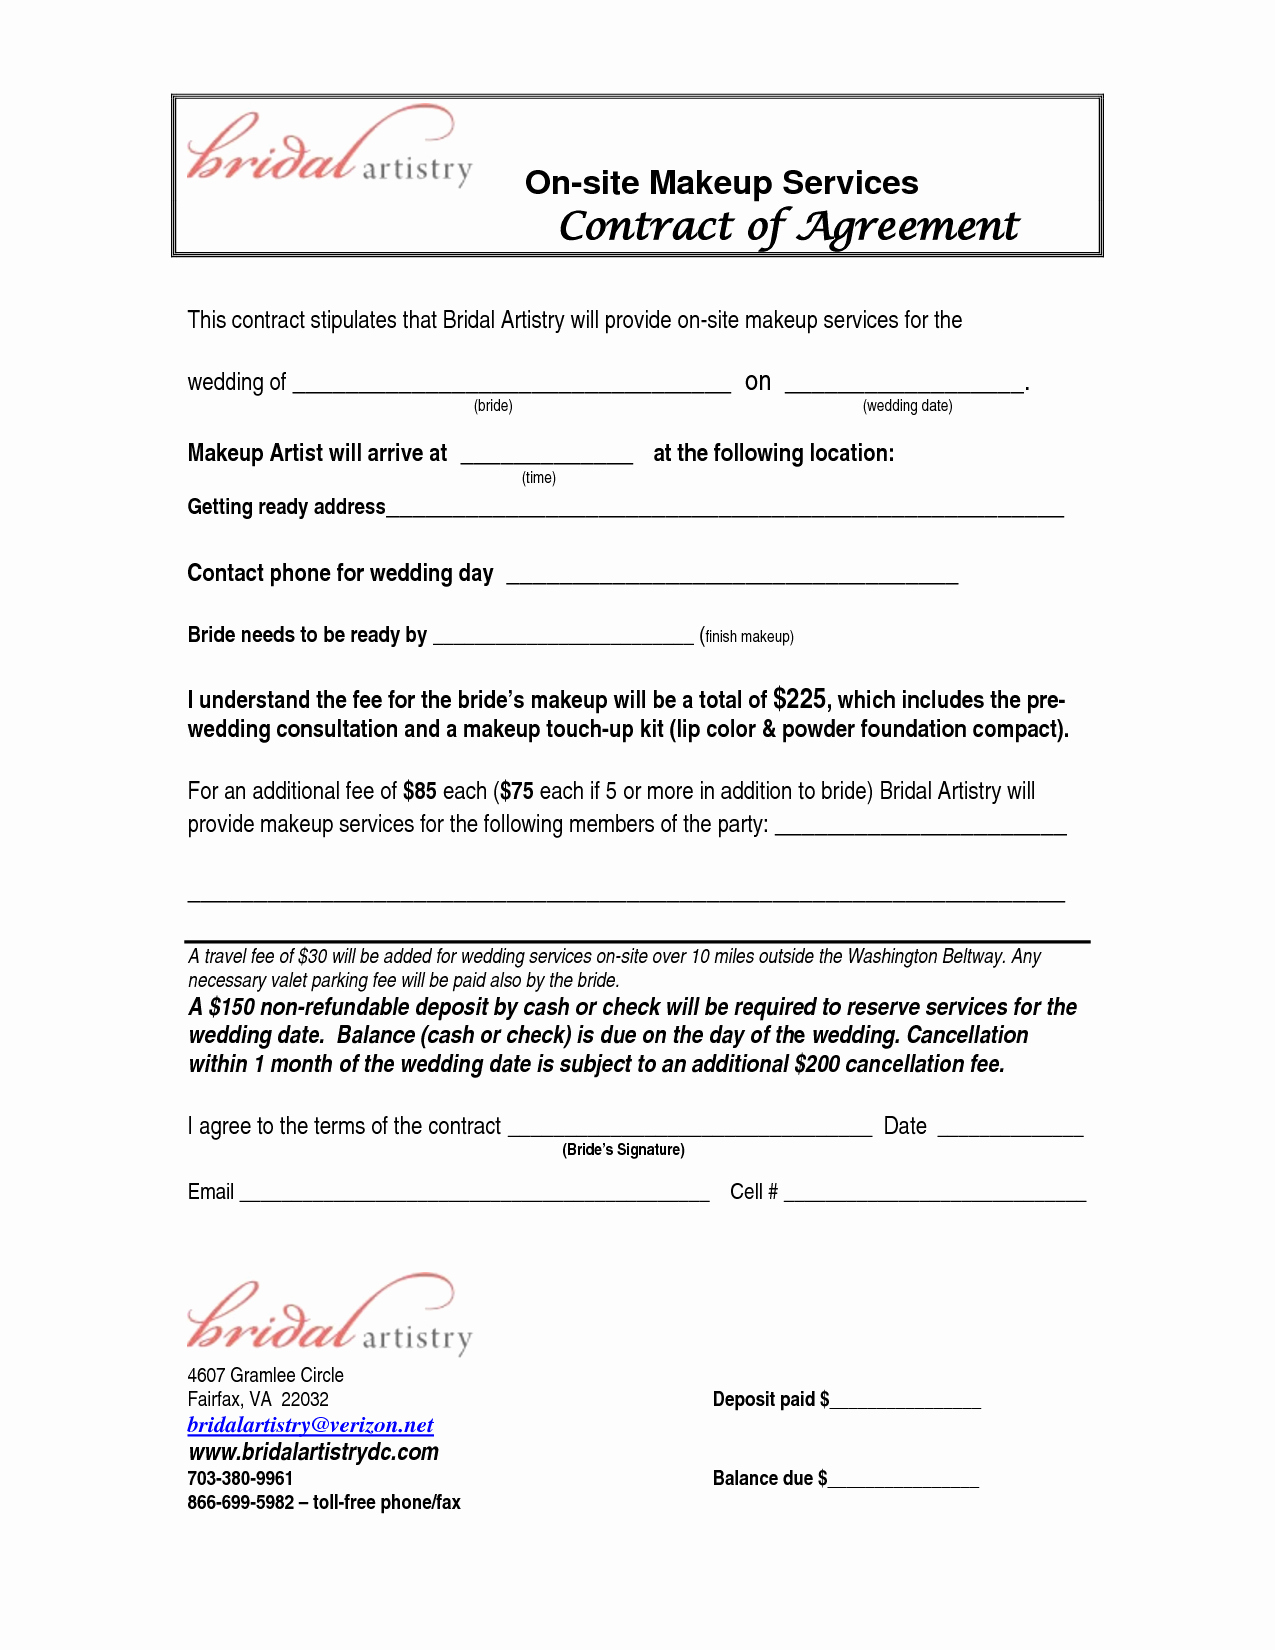 Makeup Artist Contract Template Free Unique Bridalhaircotract